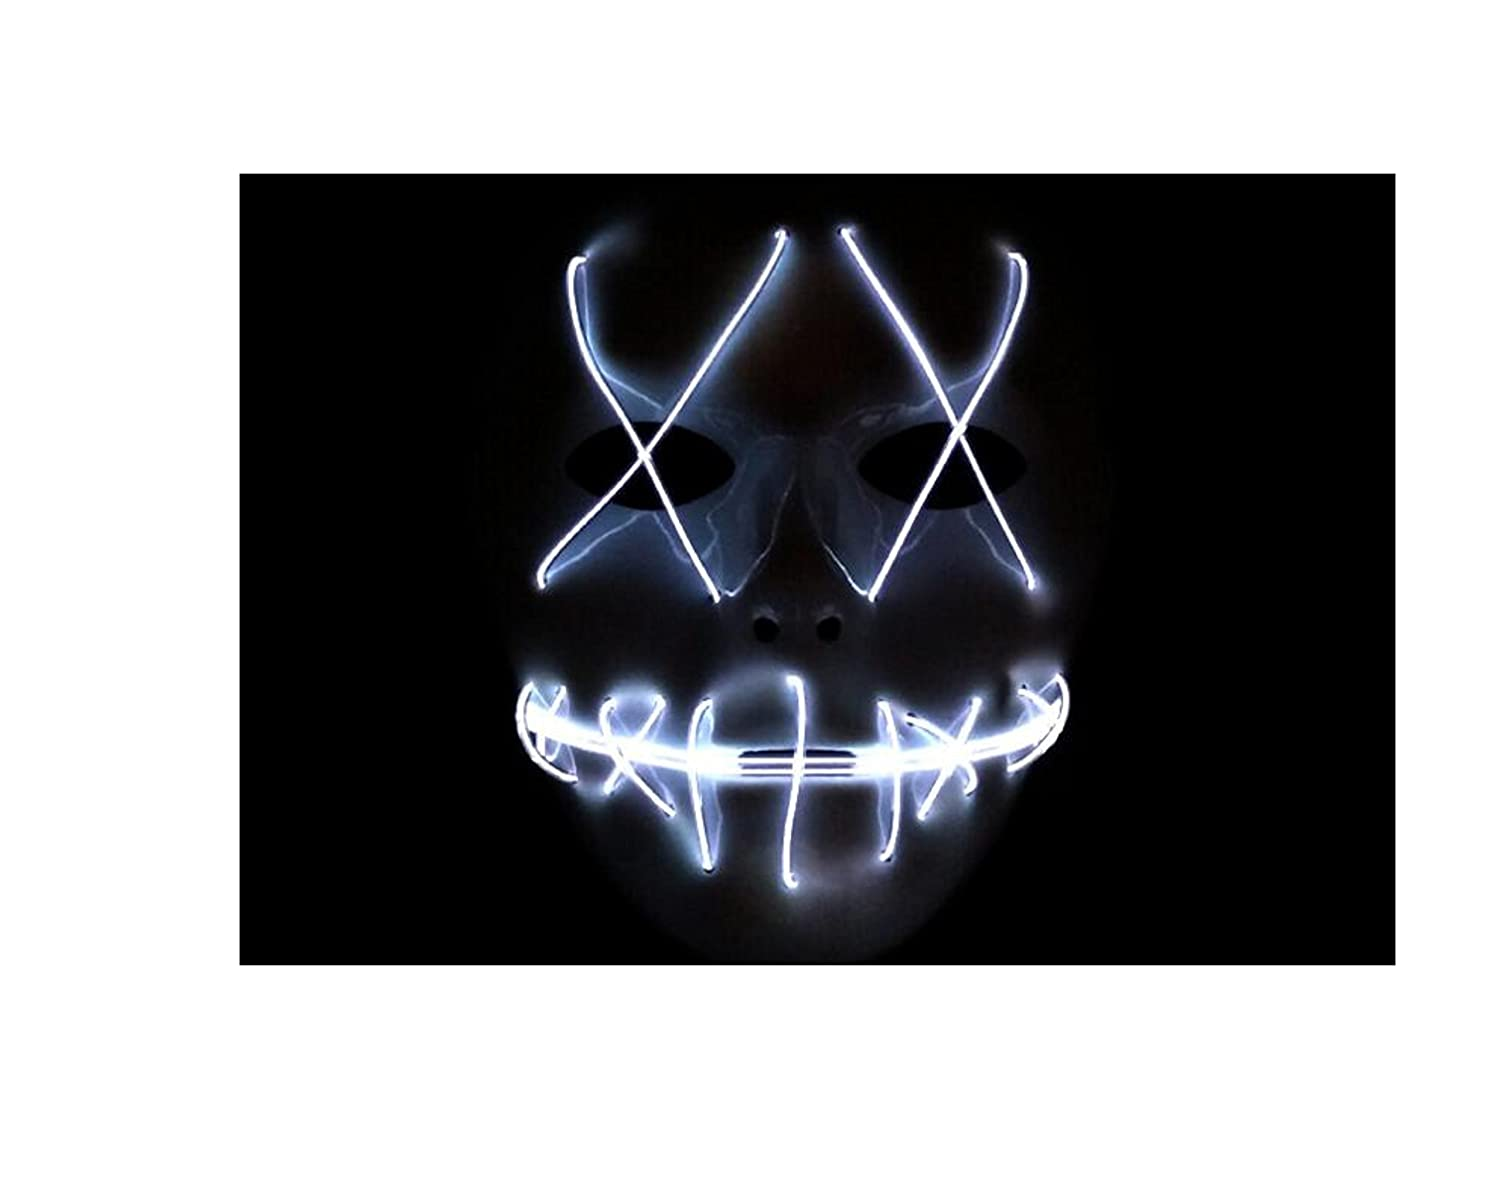 Sparik Enjoy Scary Mask Halloween Cosplay Led Costume Mask El Wire Light up Mask for Festival Parties White 1pc White Led